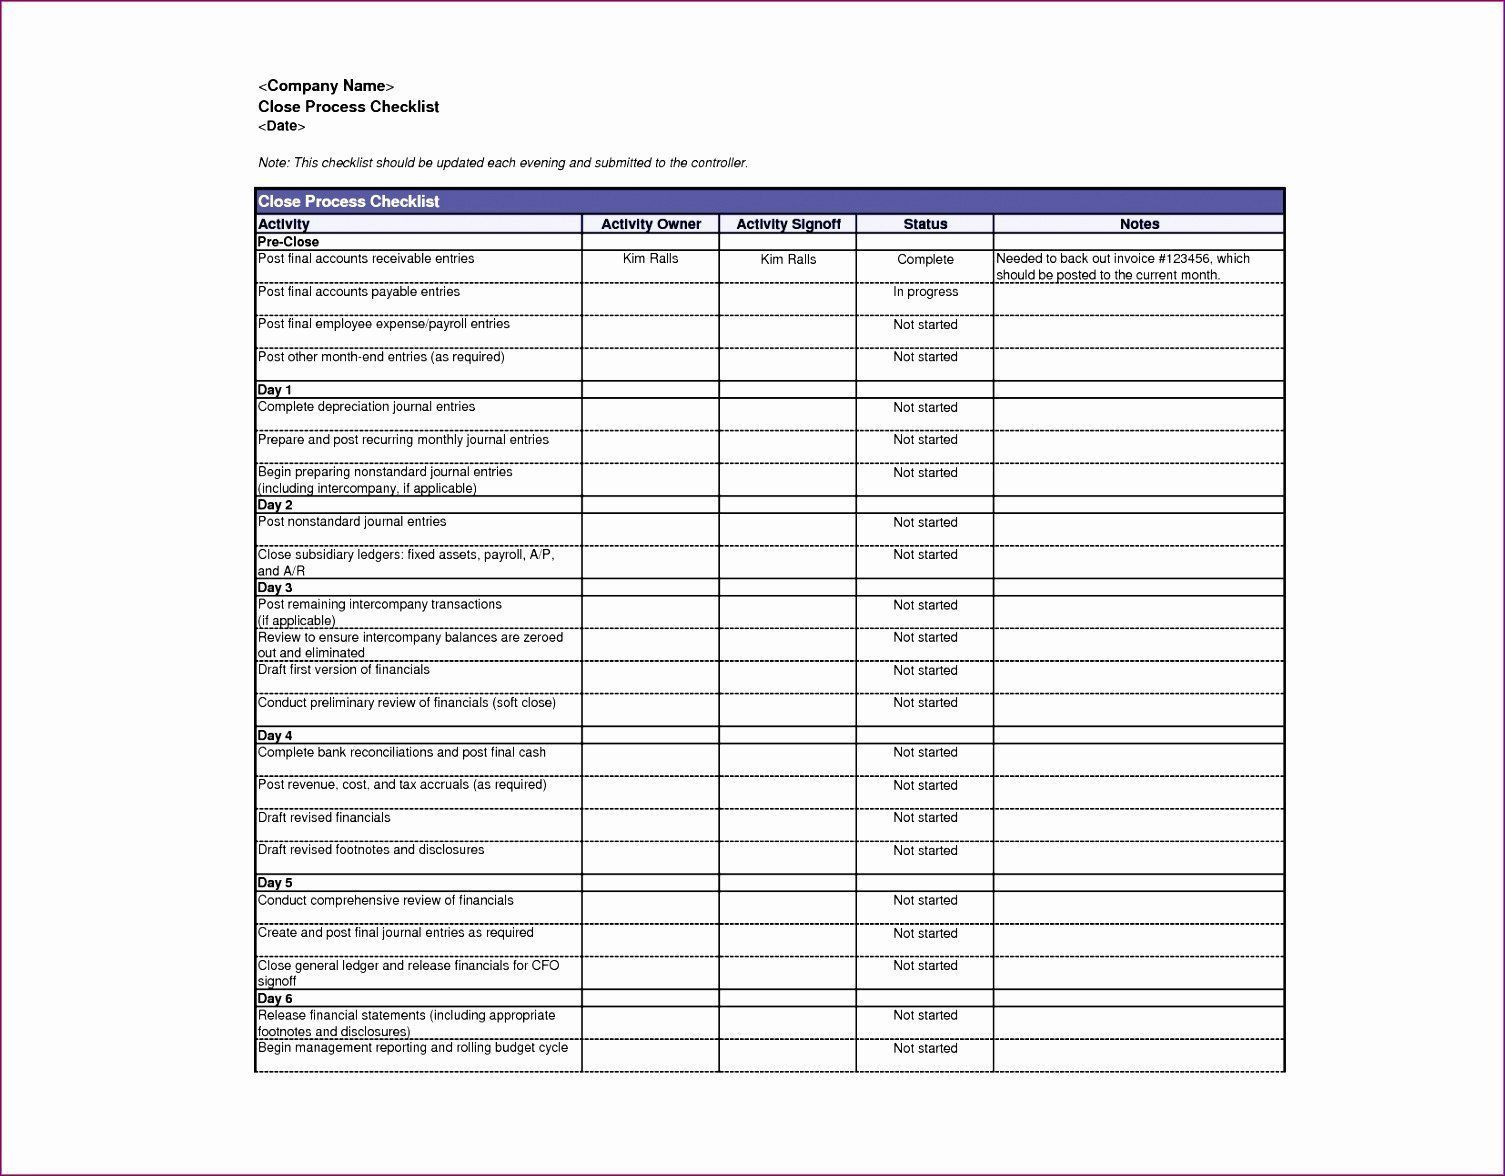 004 Dreaded Free Event Planner Template Excel Image  Checklist Planning For CorporateFull